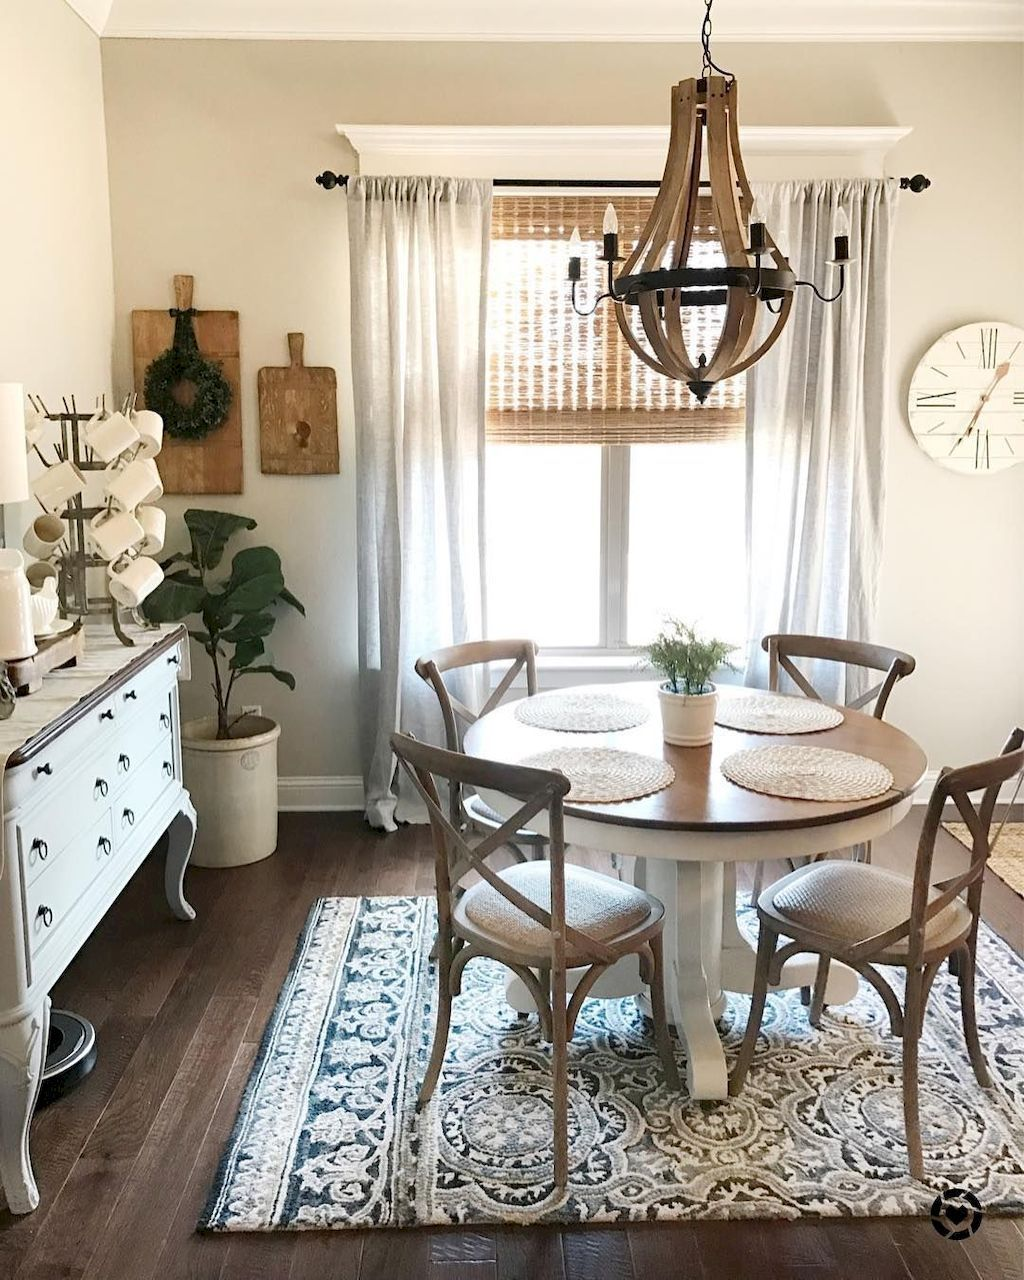 32 Stylish Dining Room Ideas To Impress Your Dinner Guests: 80+ STUNNING RUSTIC FARMHOUSE DINING ROOM SET FURNITURE